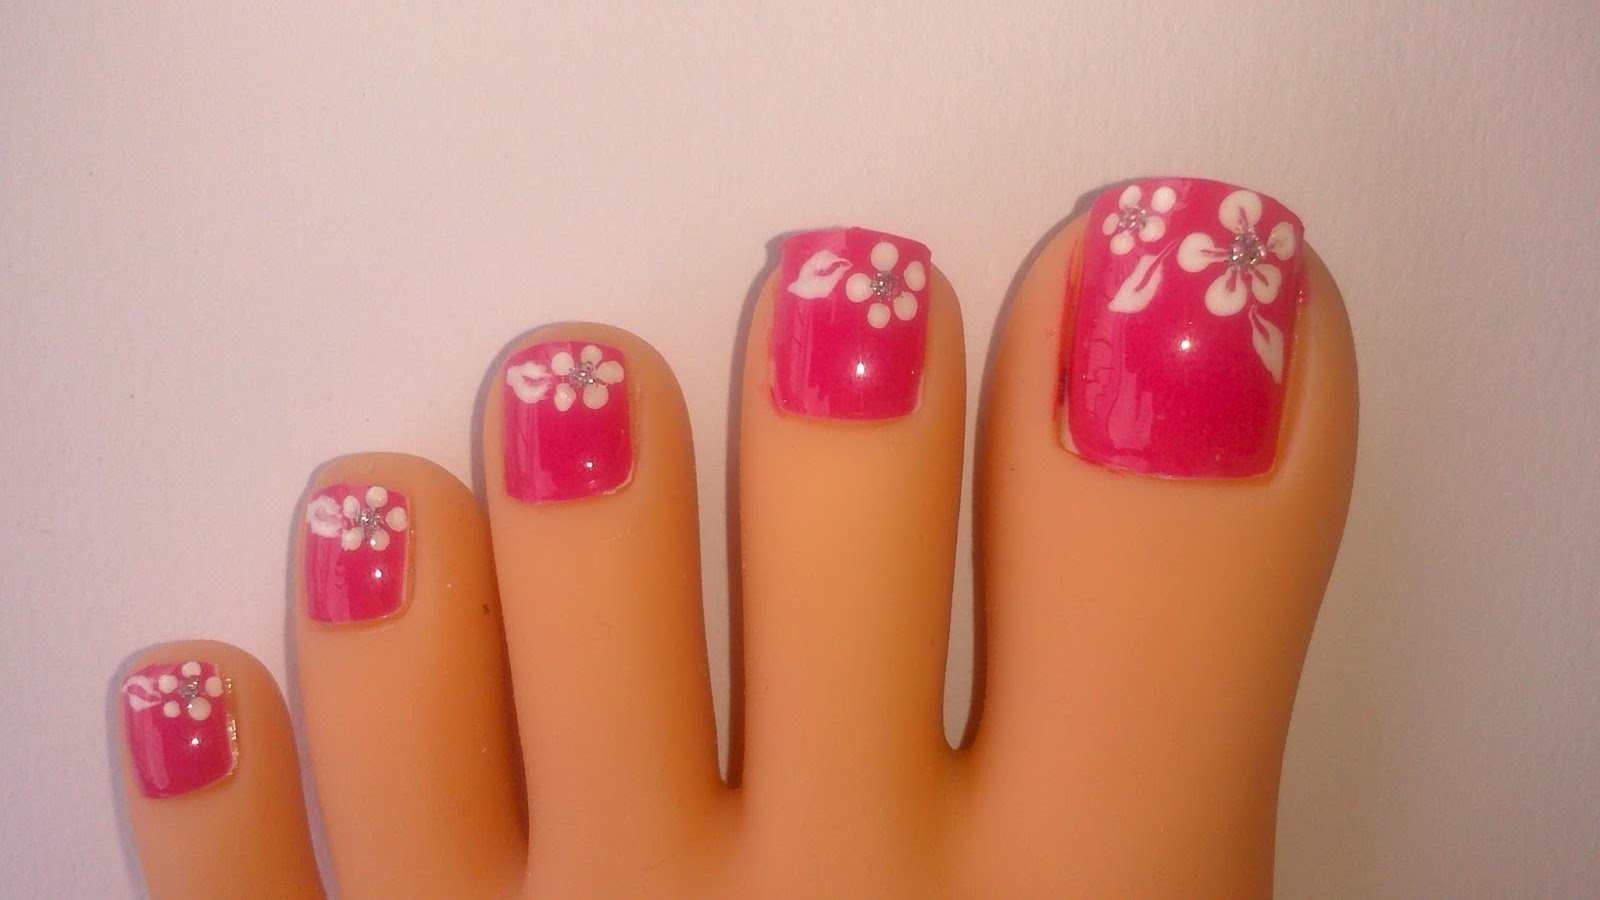 15 Simple Flower Toe Designs Images Toe Nail Designs Flowers Pink Toe Nail Designs And Toe Nail Designs Flowers Newdesignfile Com,Modern Kitchen Design Ideas With Island